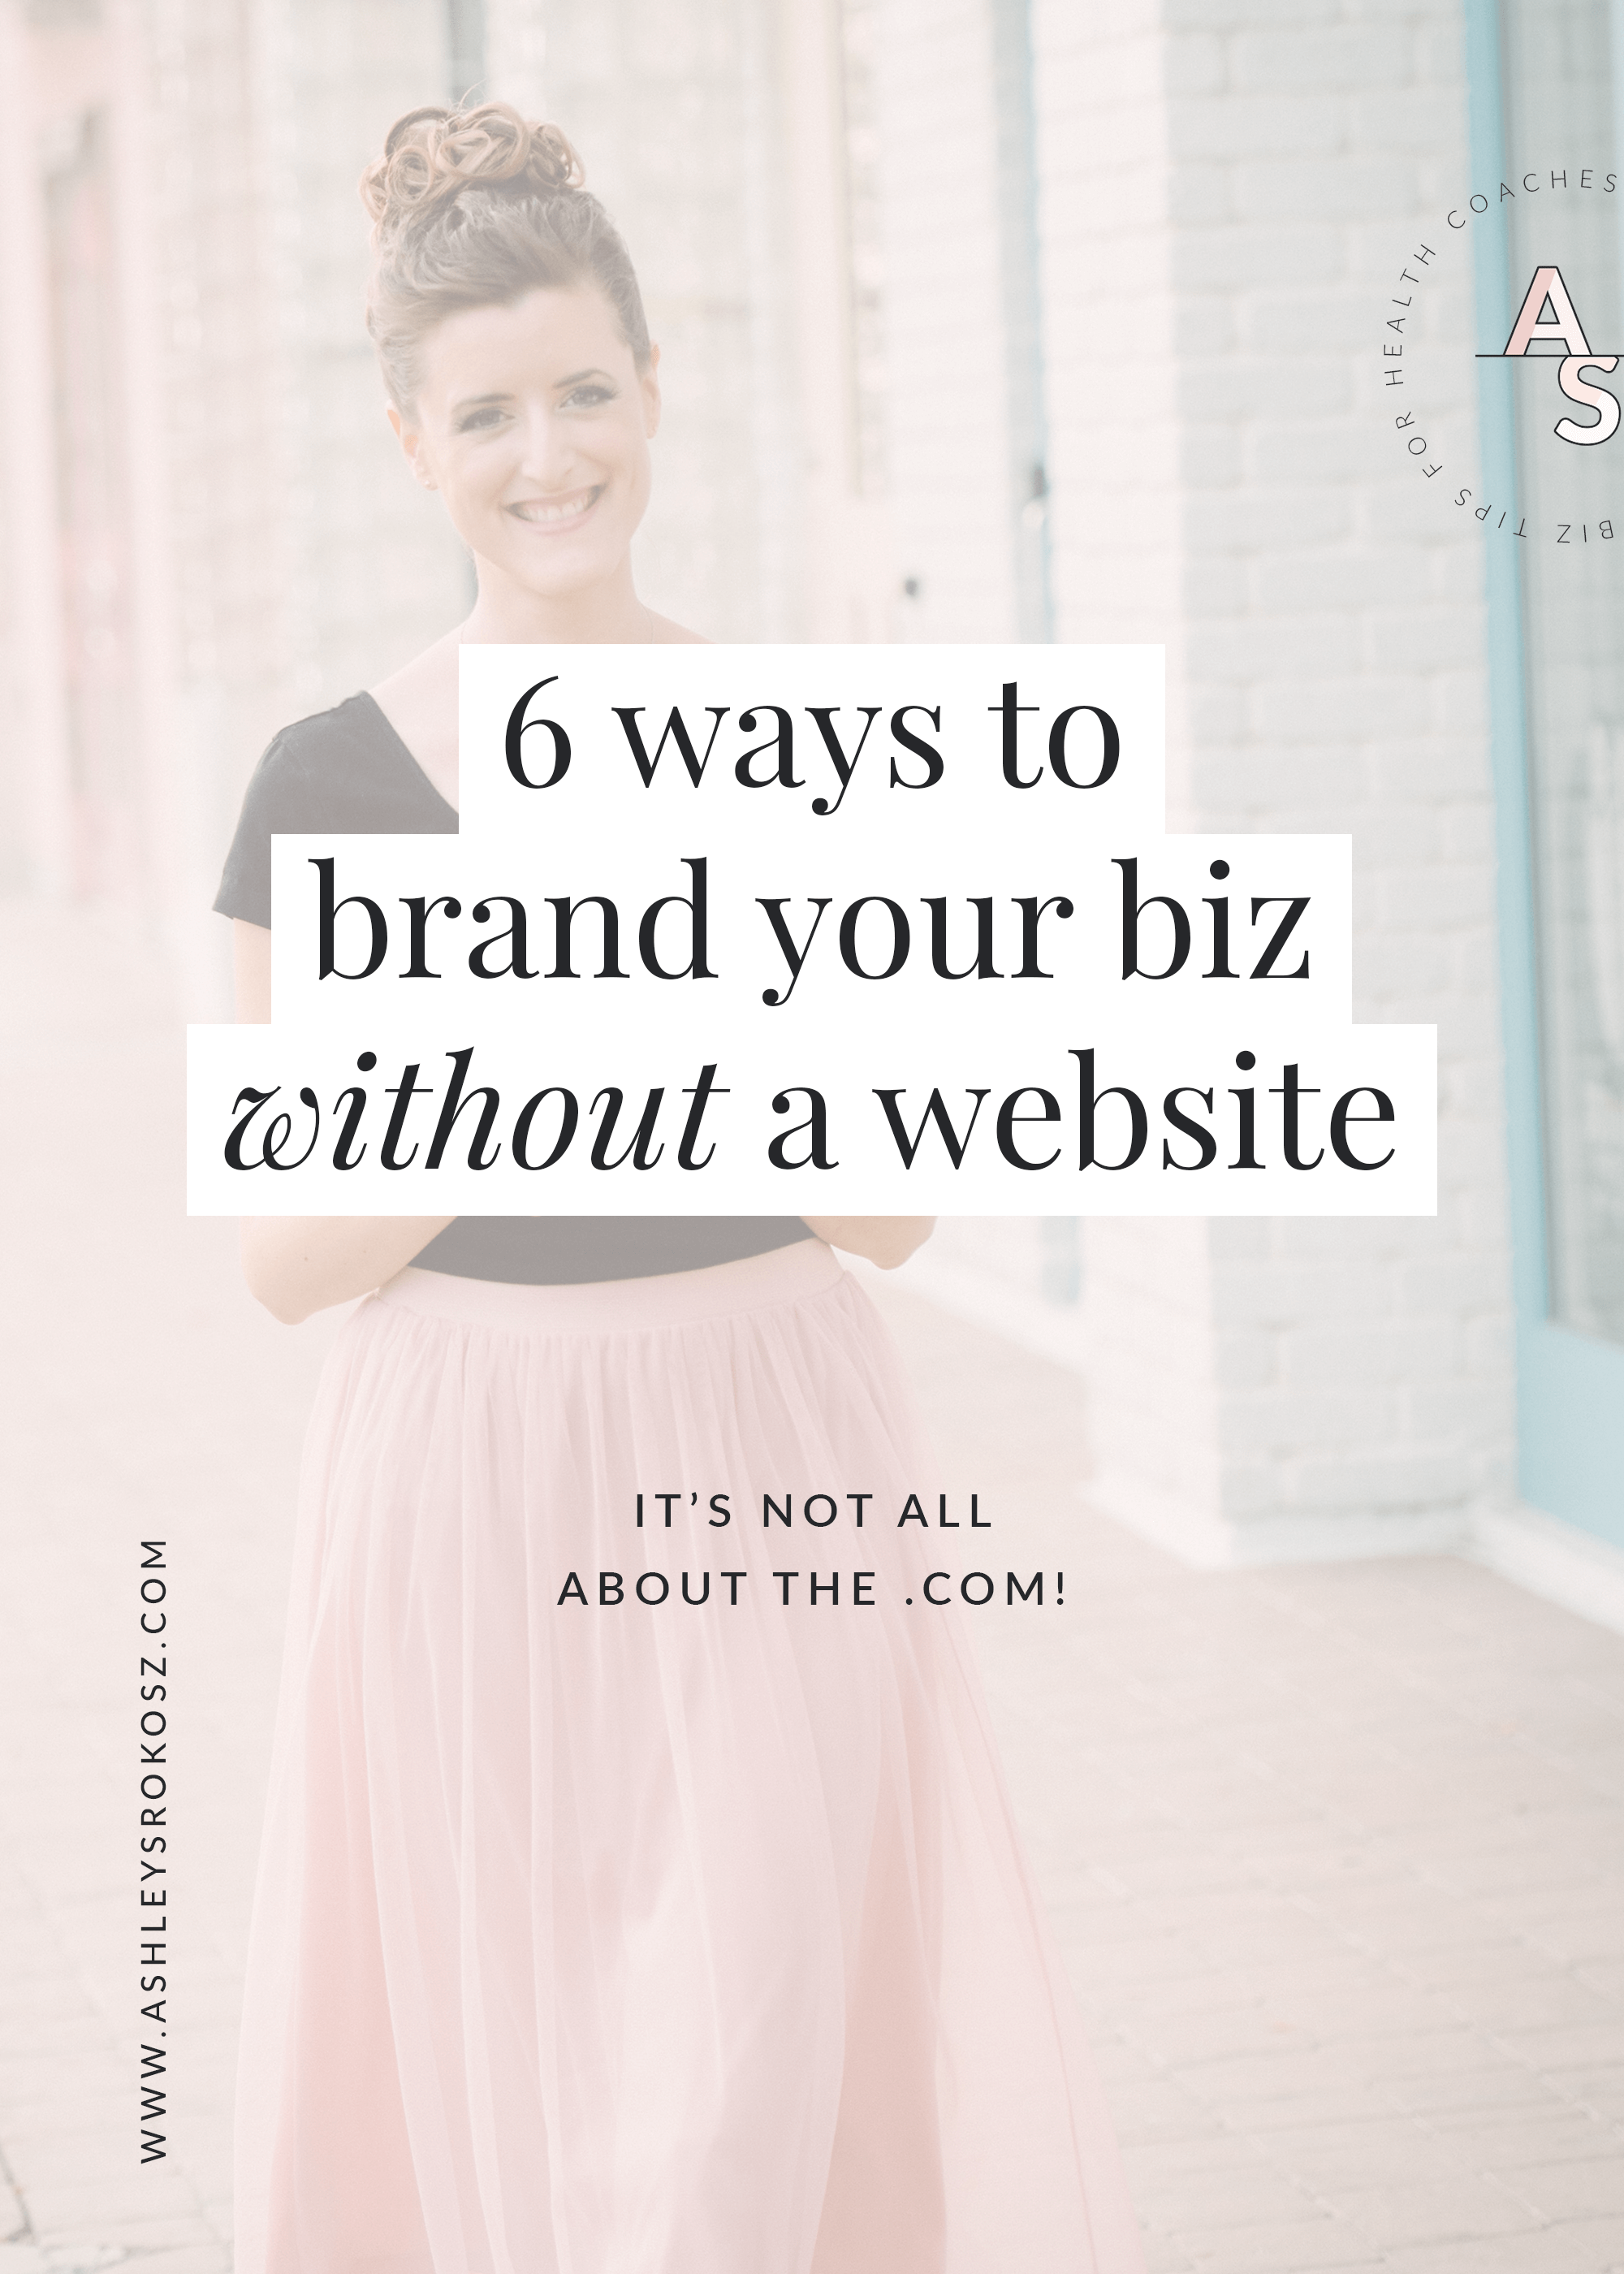 What is branding and how can it save you time in your business? Don't have a website but want to start attracting your dream clients? Click here to learn 6 ways to brand your business without a website, so that you can stand out from the crowd and create higher profits!  #healthcoach   #healthcoachbusiness   #nutritionist   #nutritionbusiness   #becomeahealthcoach   #yogateacher   #naturopath